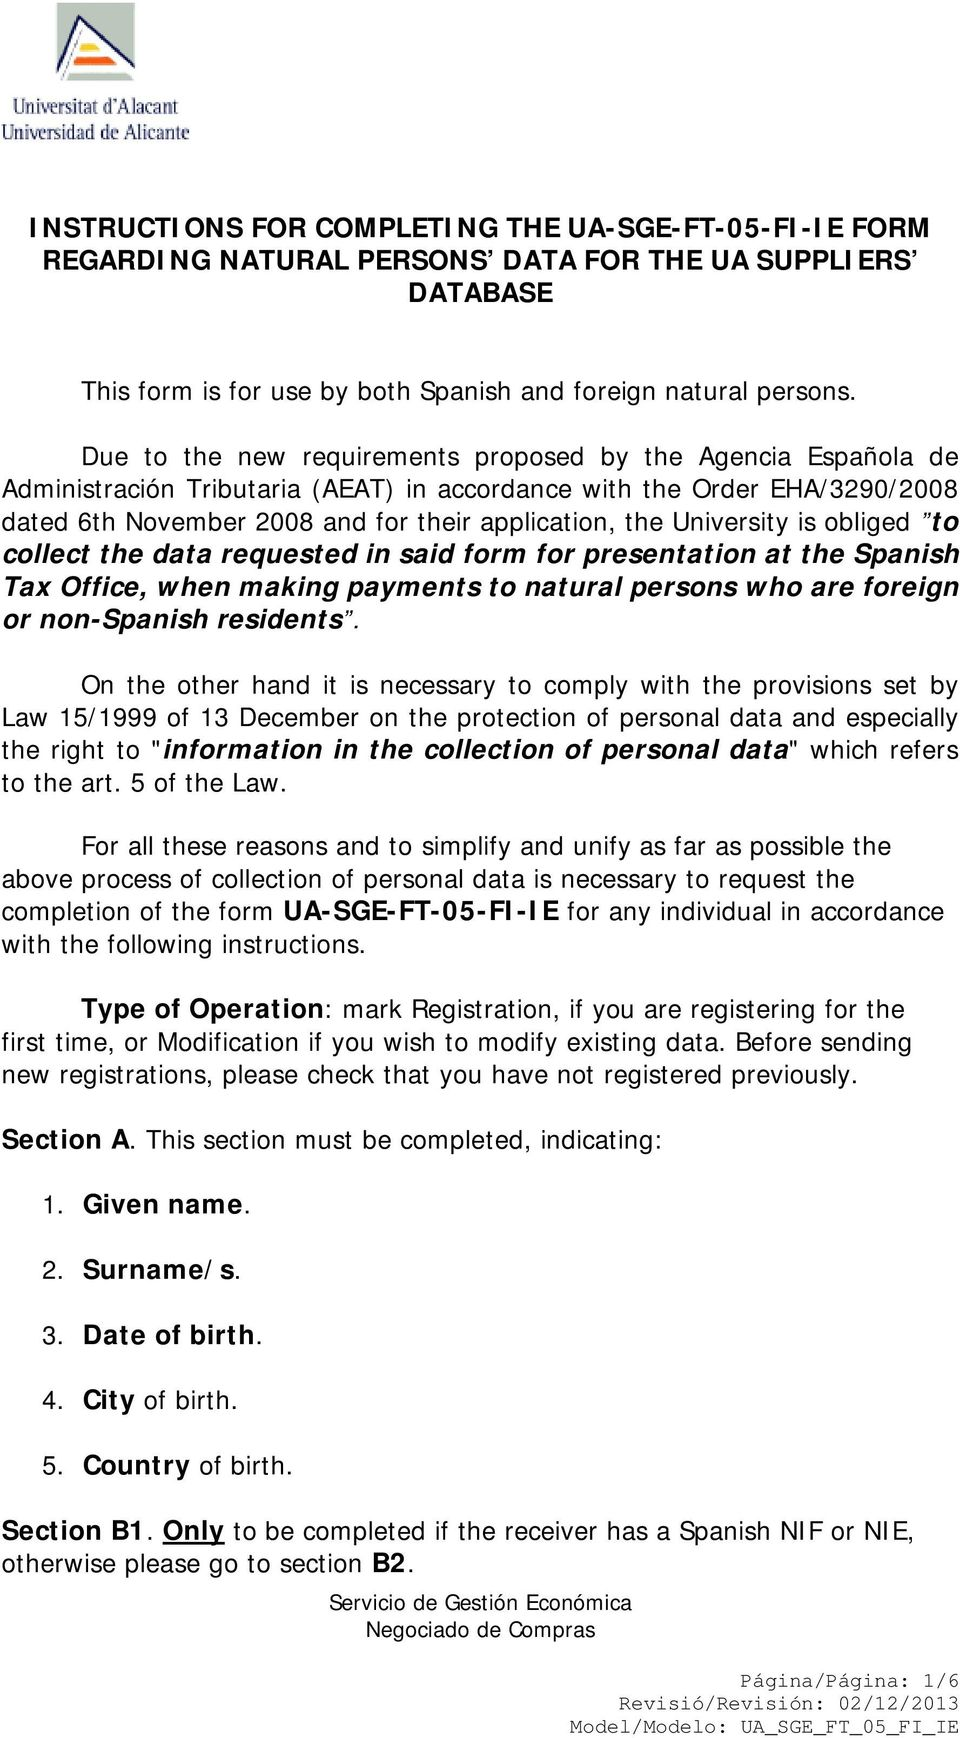 University is obliged to collect the data requested in said form for presentation at the Spanish Tax Office, when making payments to natural persons who are foreign or non-spanish residents.